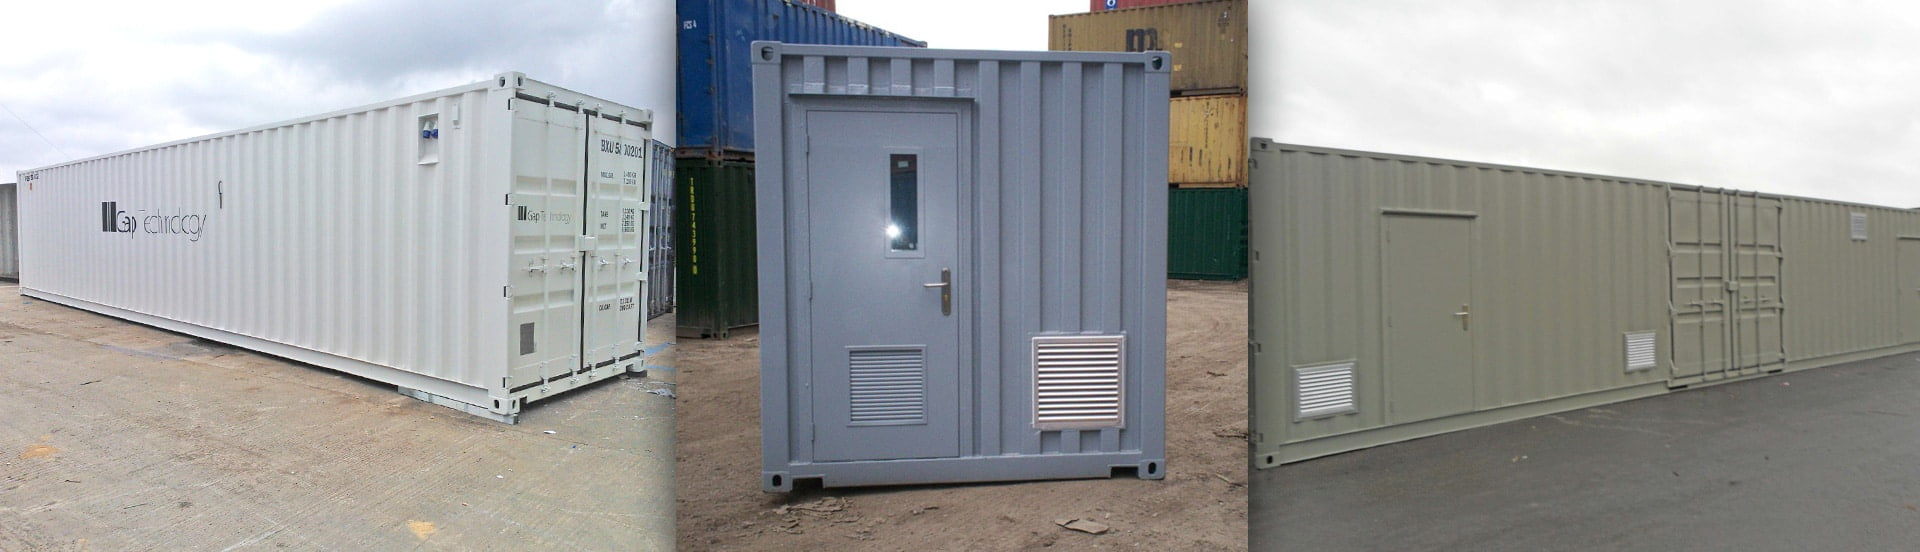 Generator Enclosure Containers